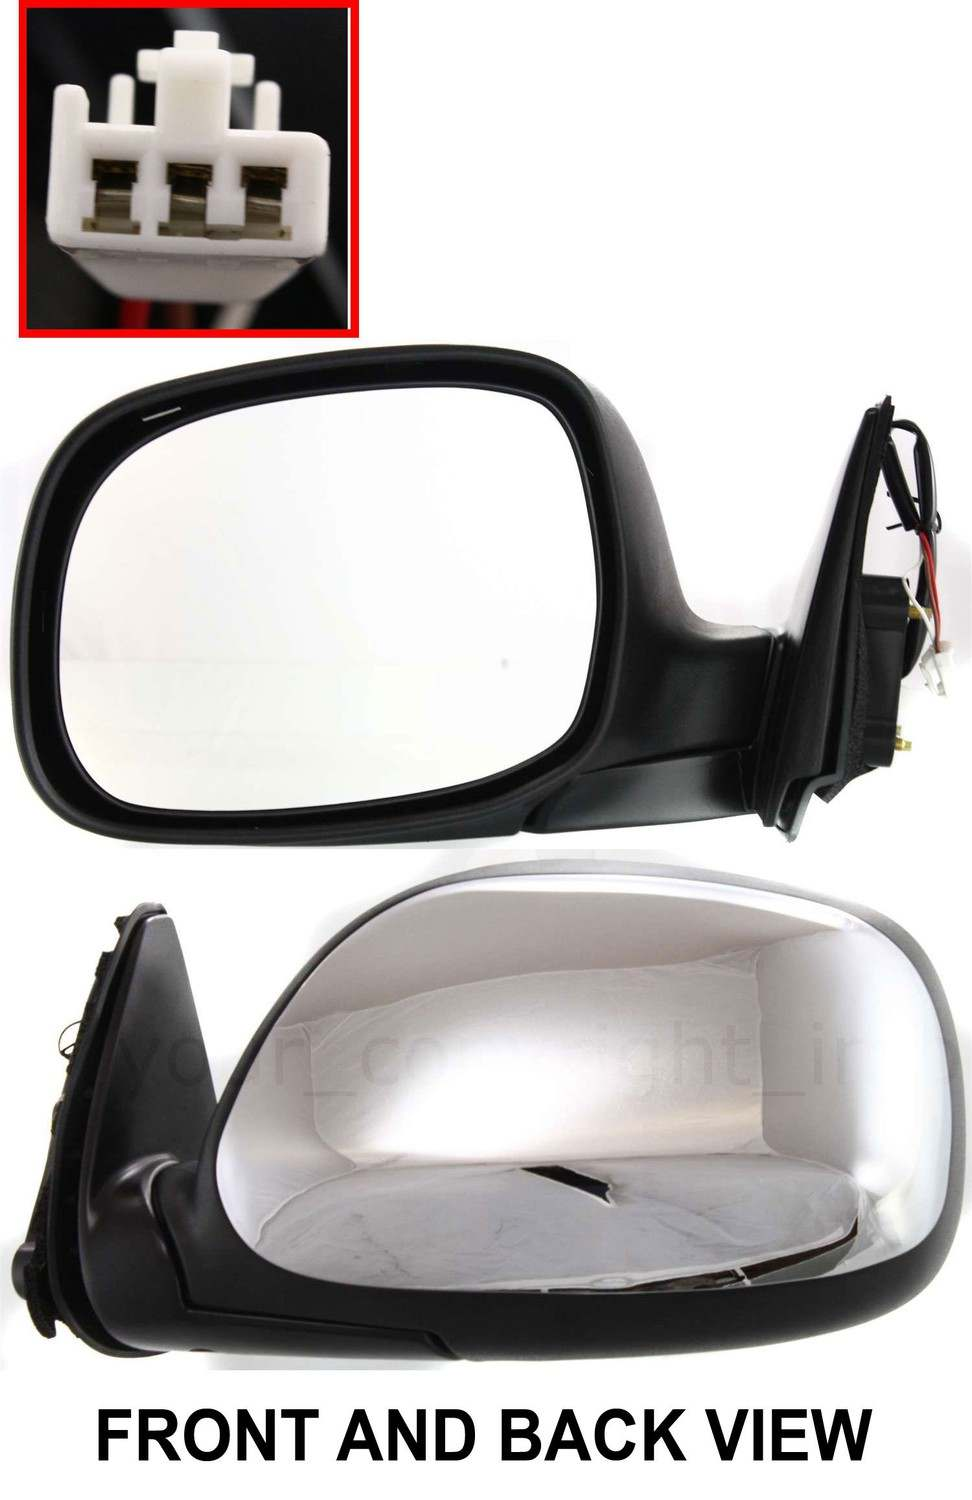 tundra rear view mirror ebay